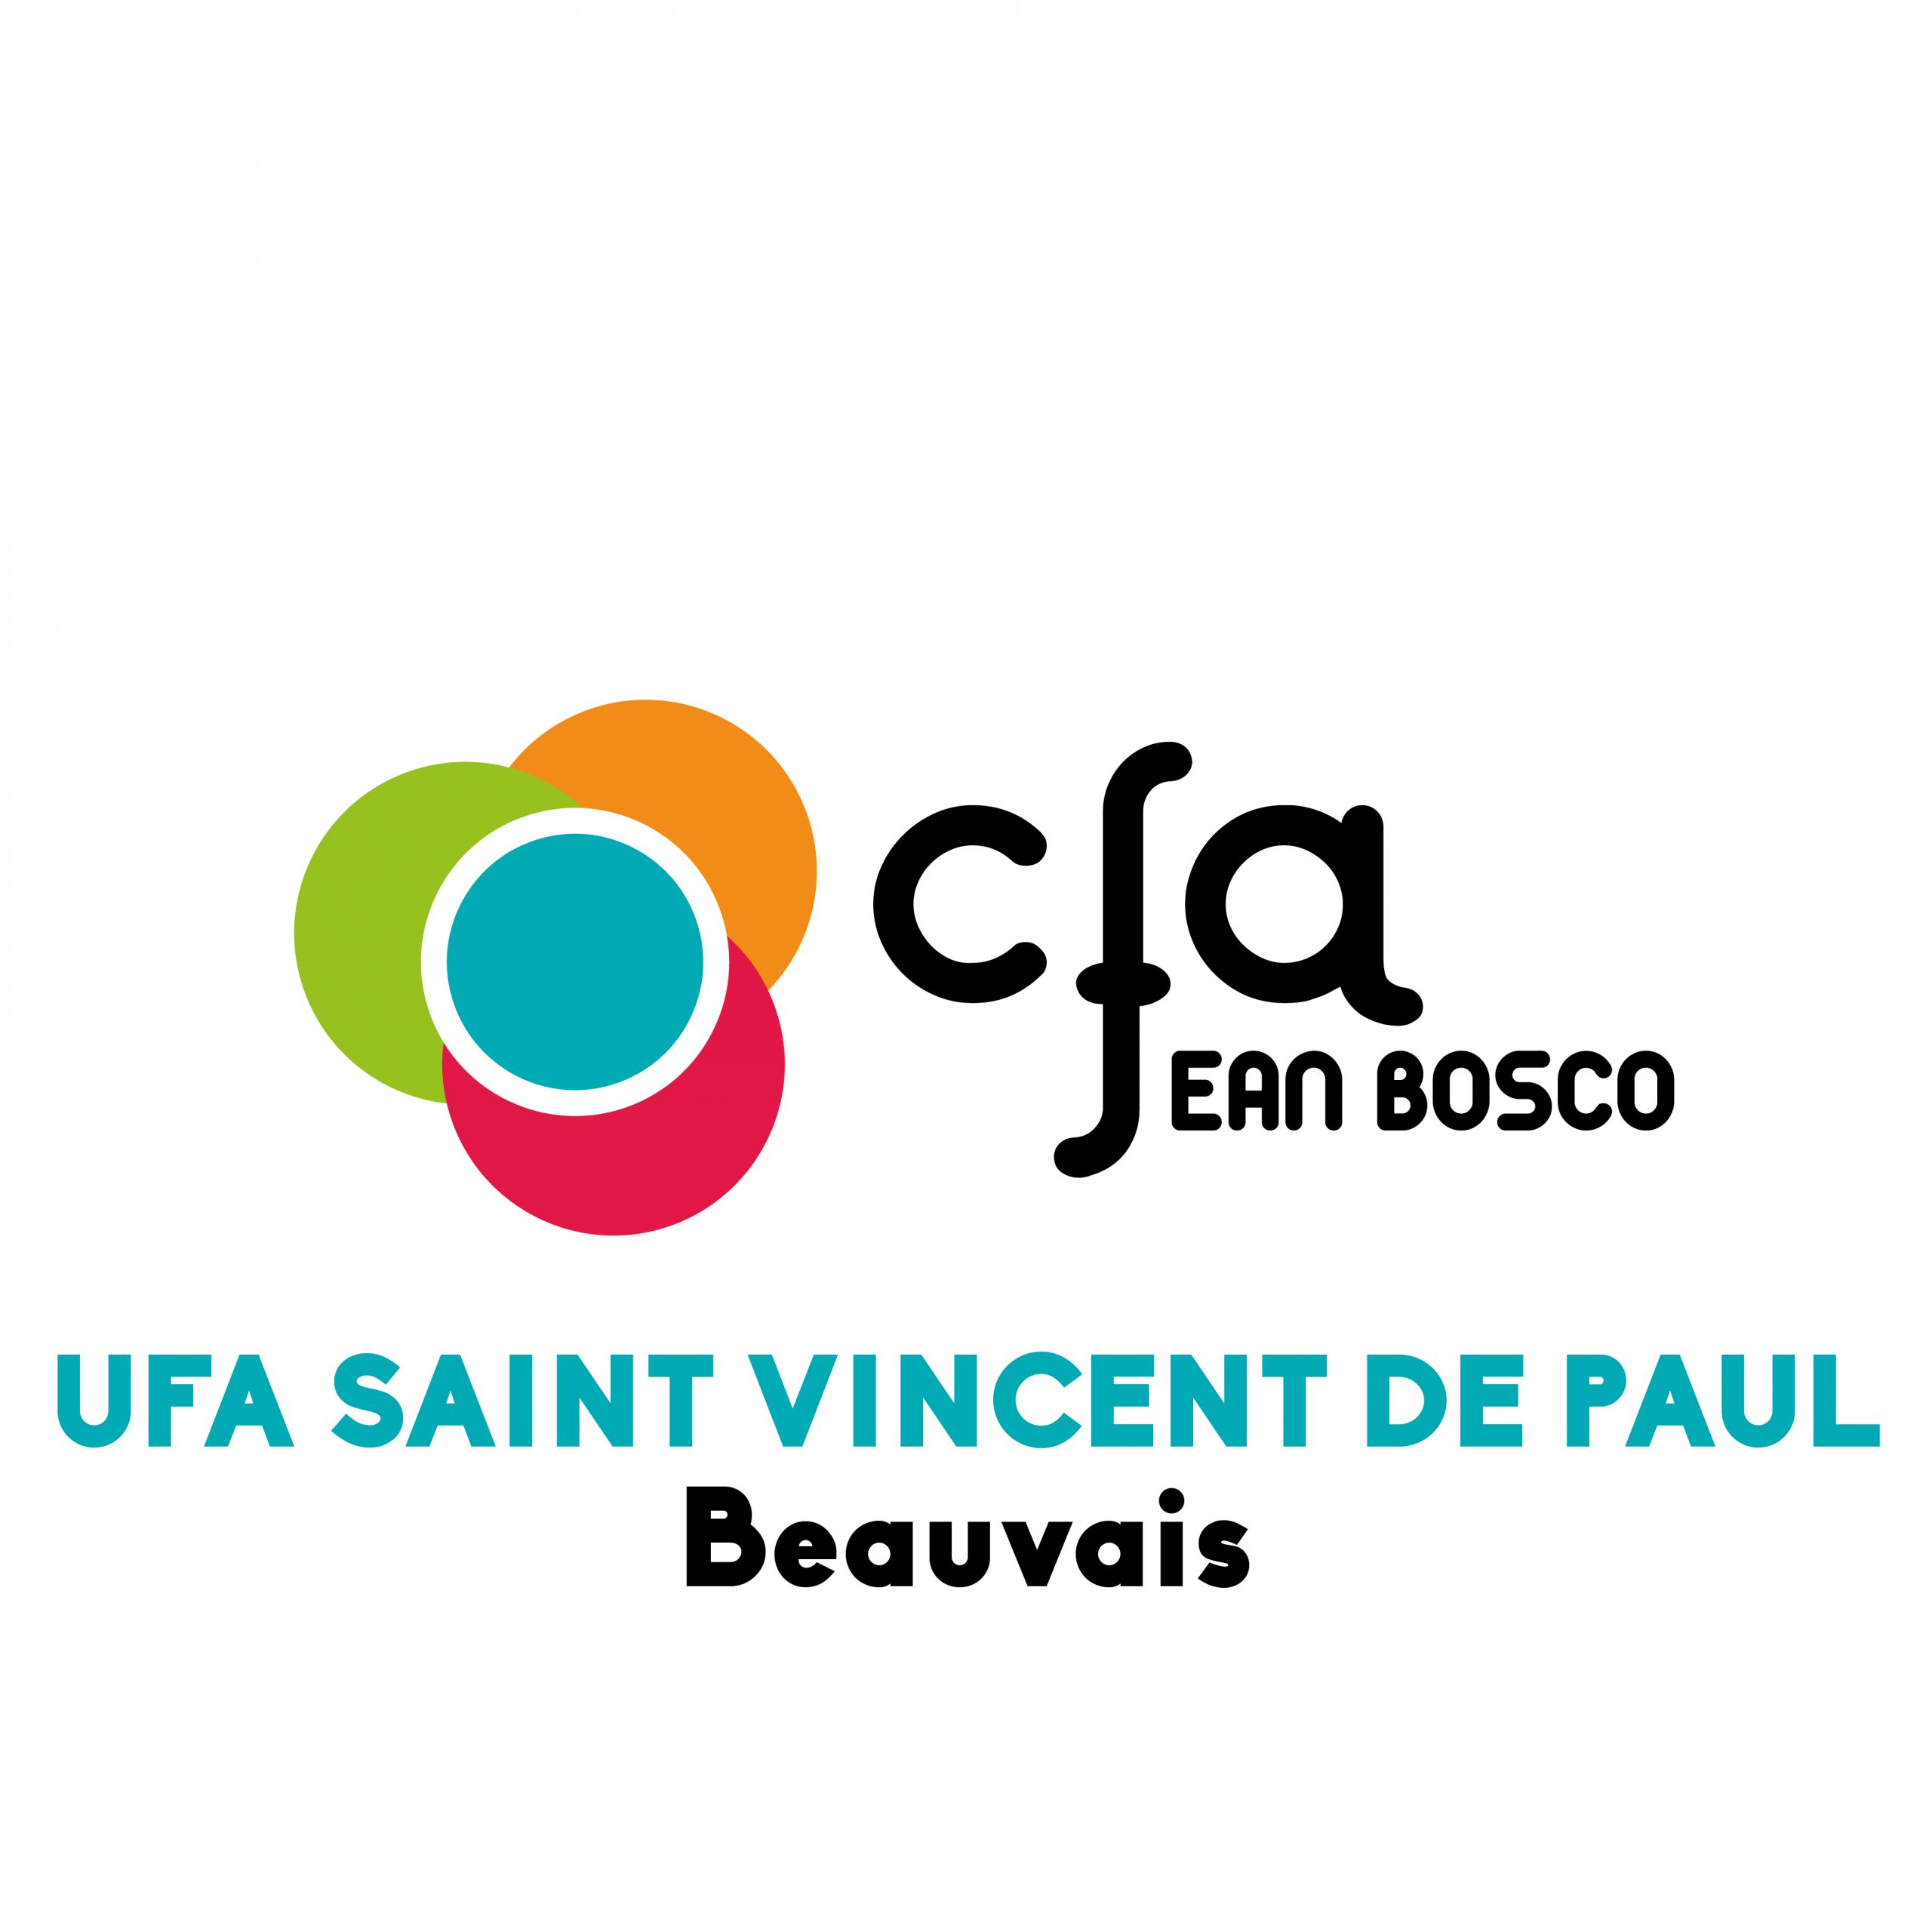 UFA SAINT VINCENT DE PAUL Beauvais